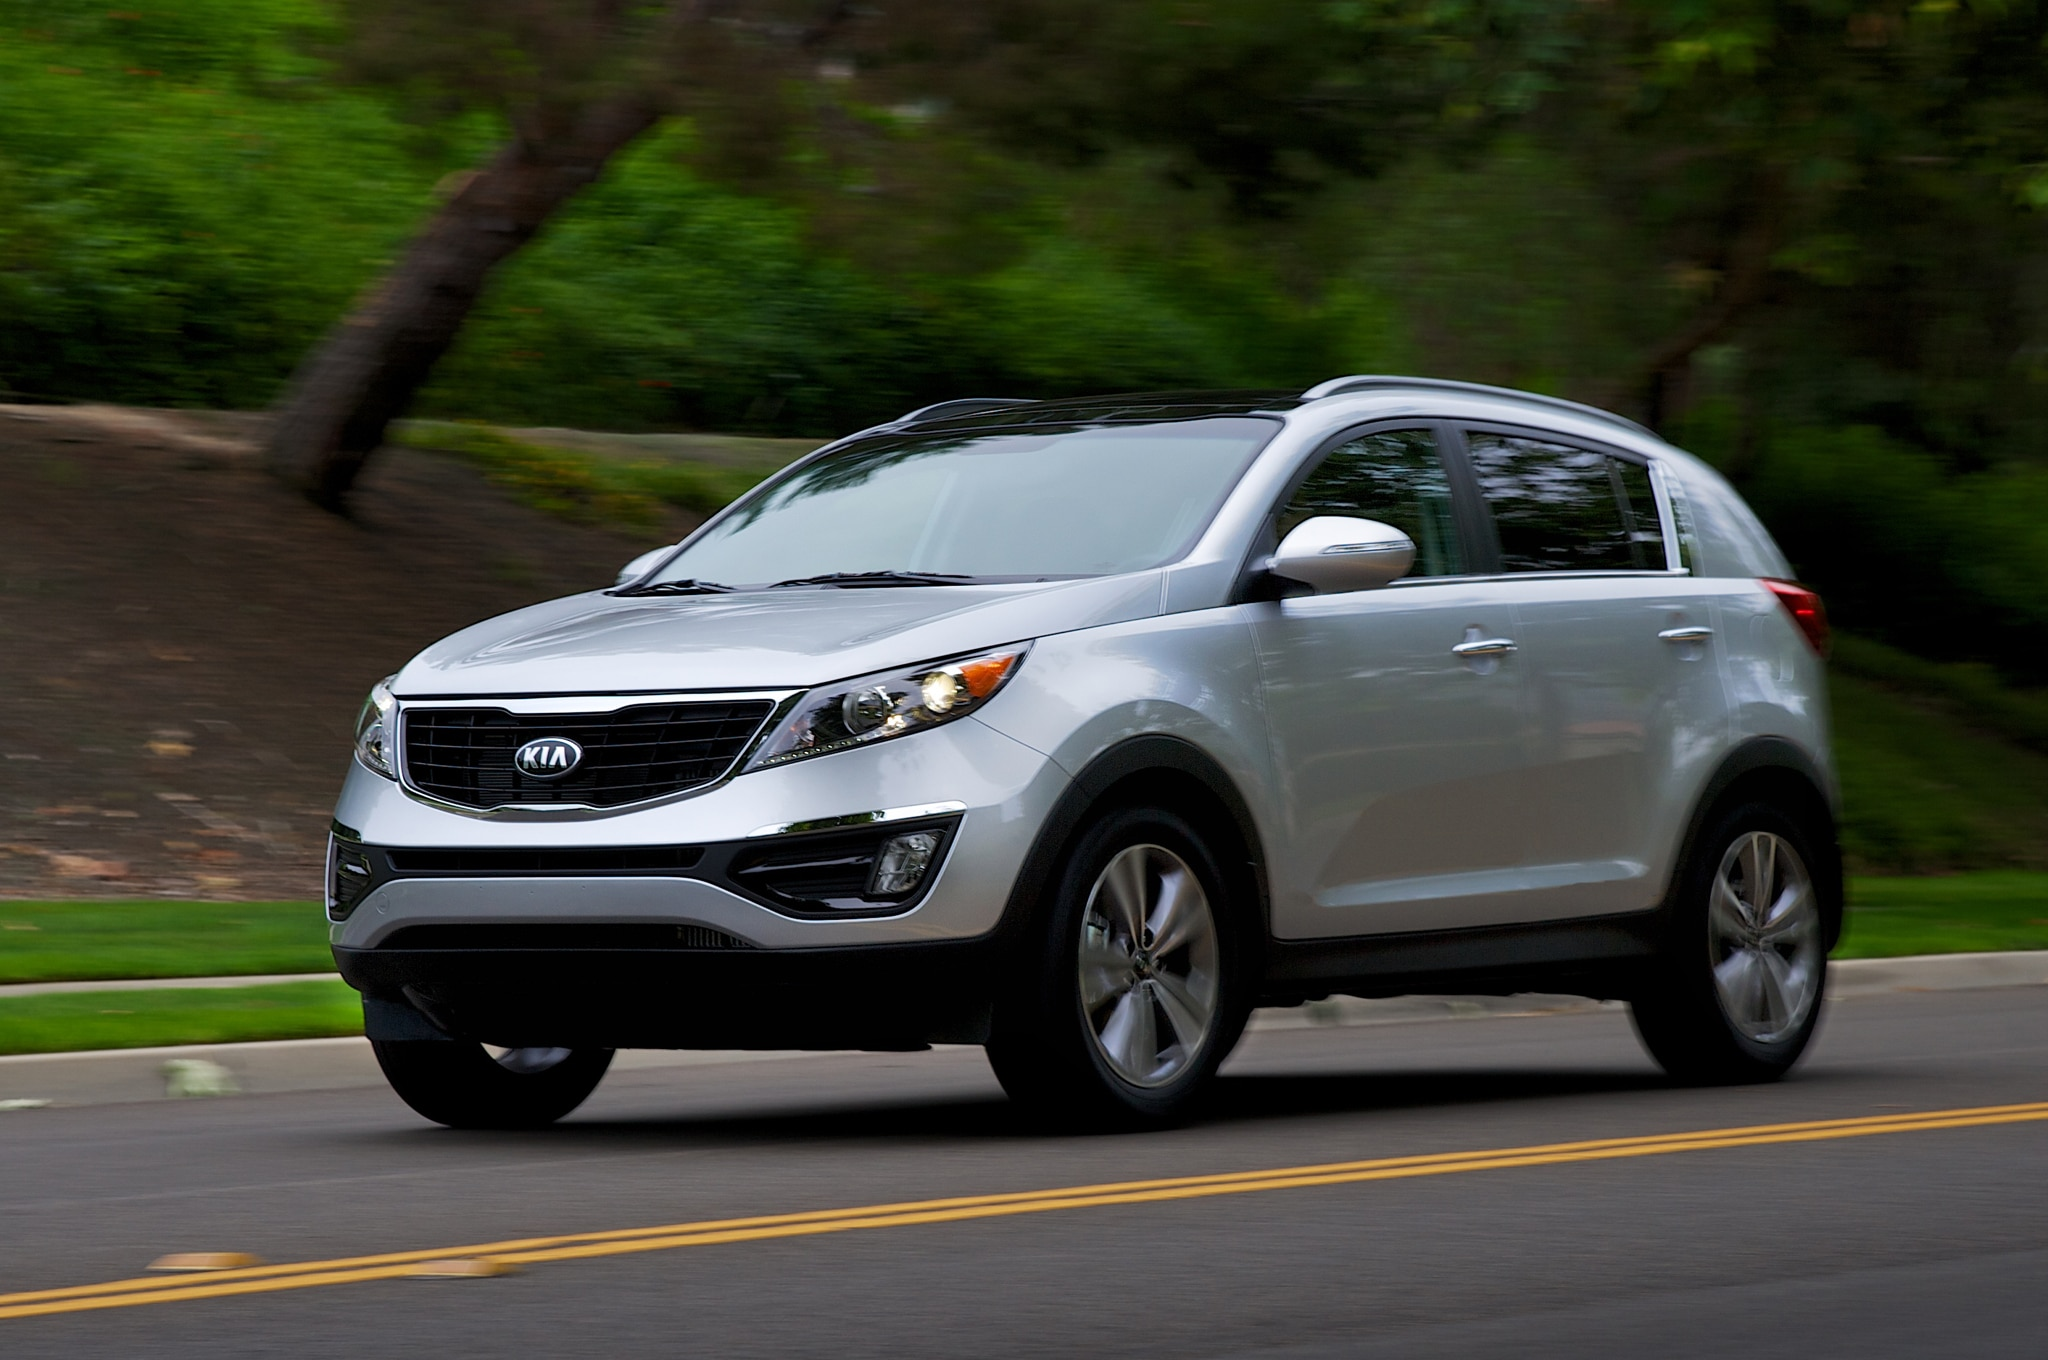 hight resolution of 2014 kia sportage gets new gdi engine detail changes truck trend2014 kia sportage gets new